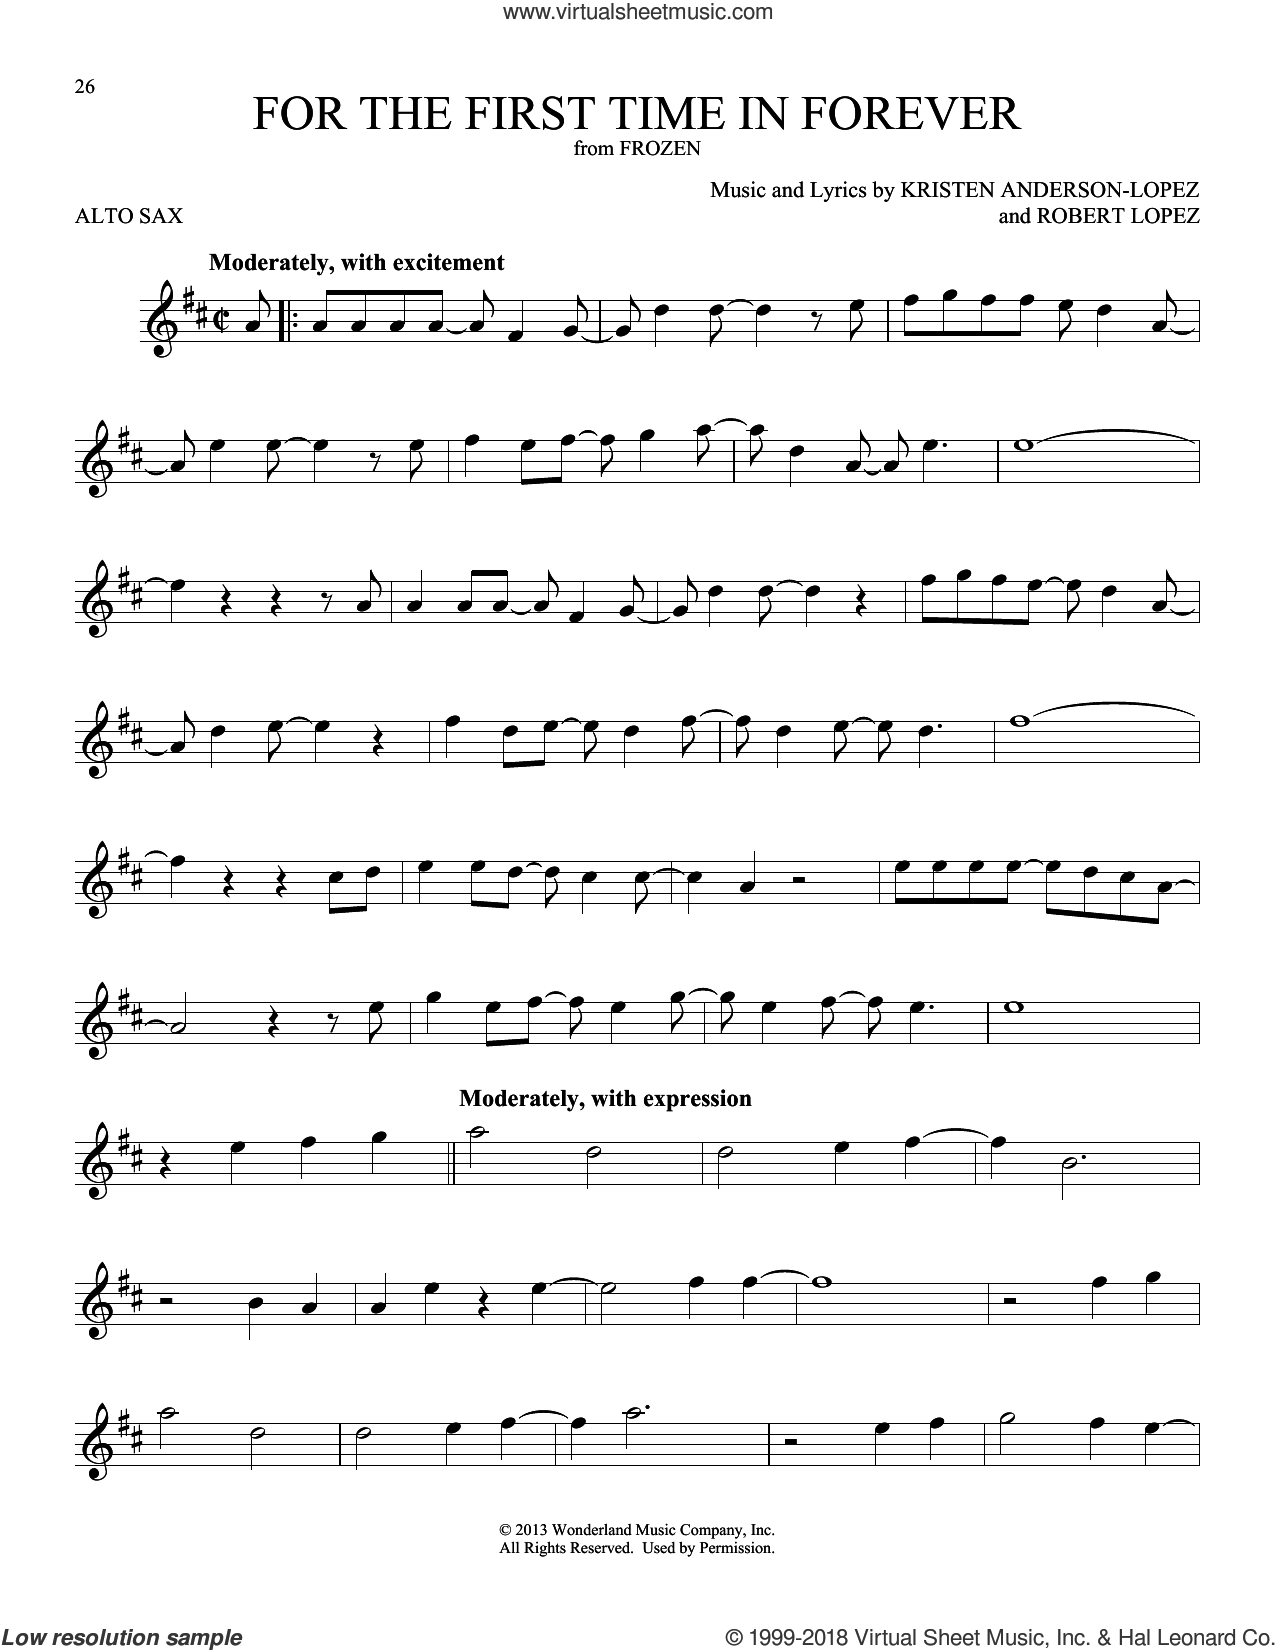 For The First Time In Forever (from Disney's Frozen) sheet music for alto saxophone solo by Kristen Bell, Idina Menzel, Kristen Anderson-Lopez and Robert Lopez, intermediate skill level